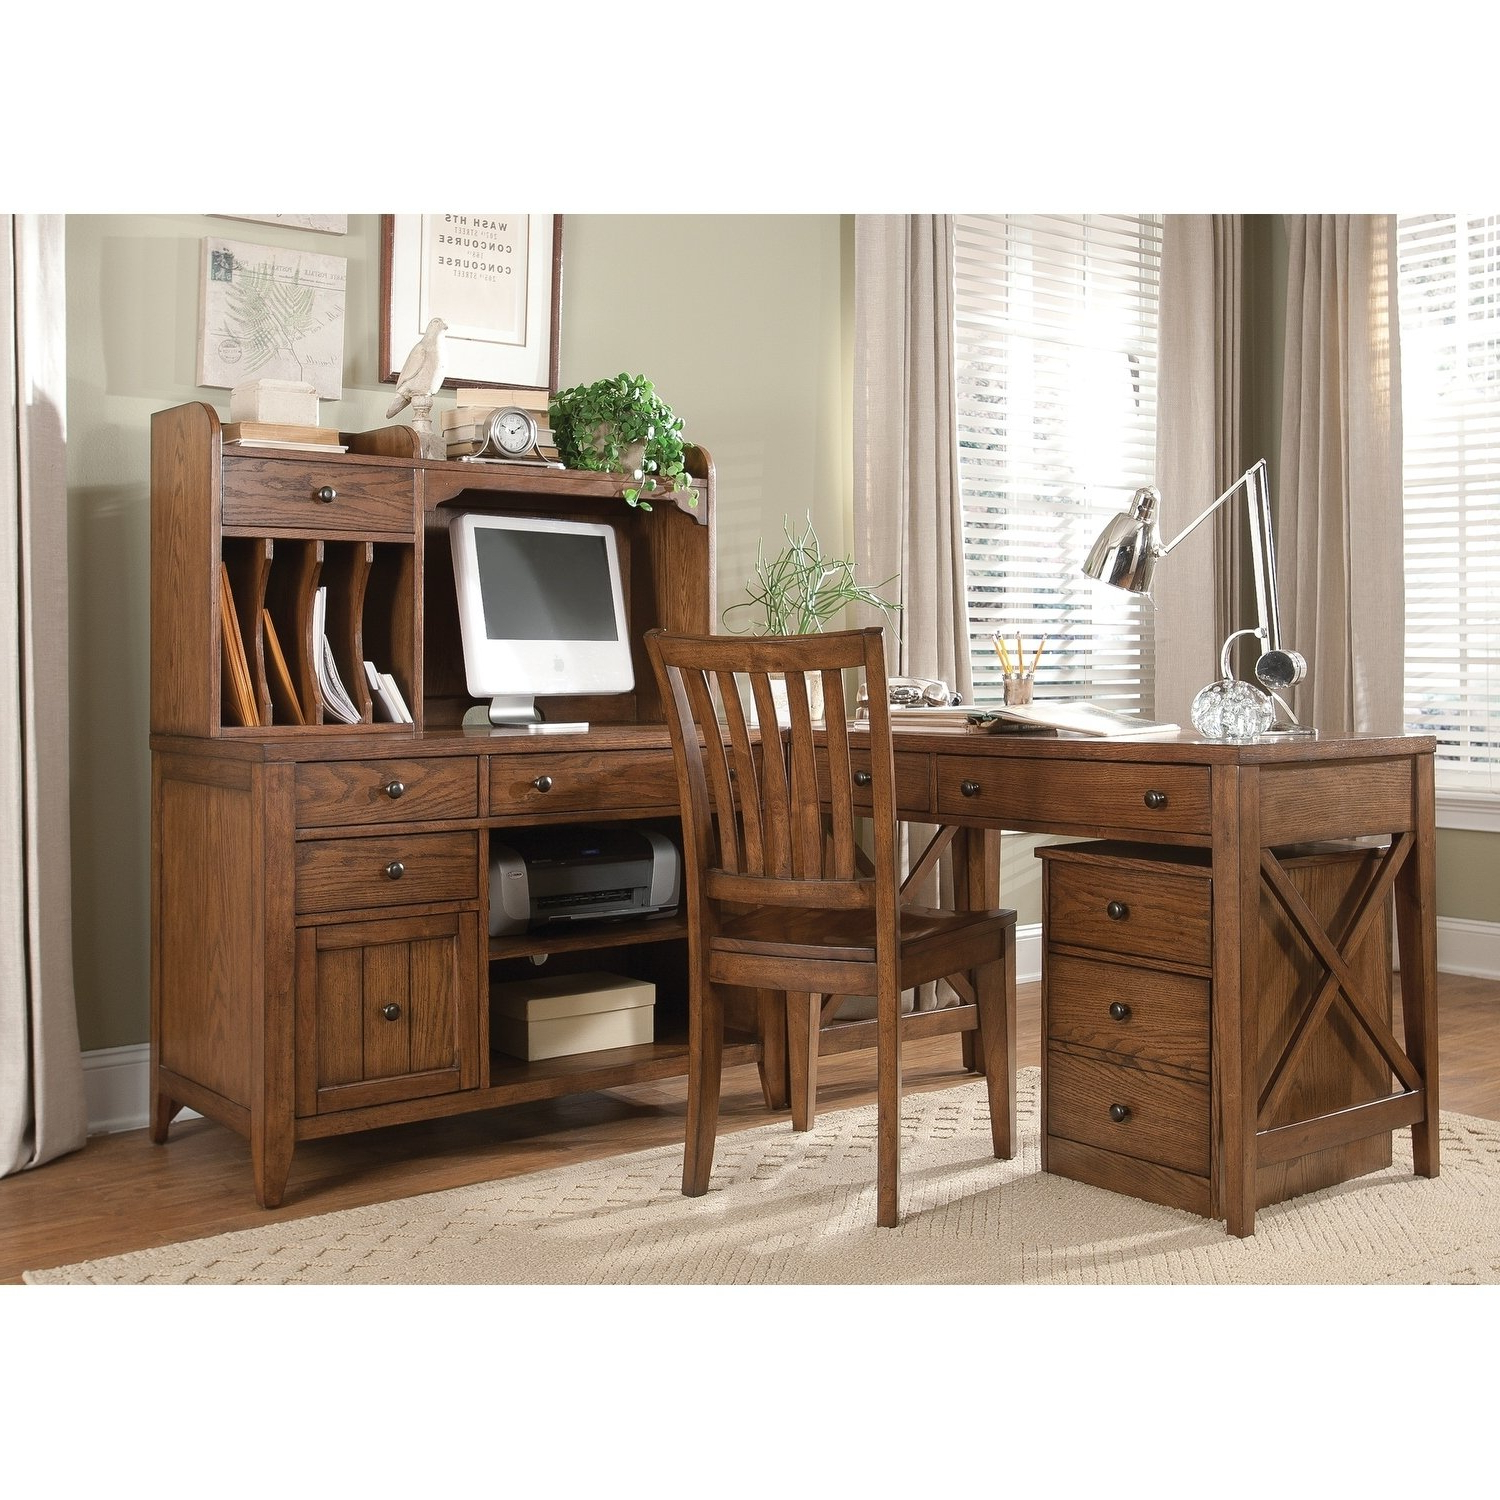 Most Current Shop Hearthstone Rustic Oak Computer Credenza – Free Shipping Today Inside Rustic Black & Zebra Pine Sideboards (View 20 of 20)